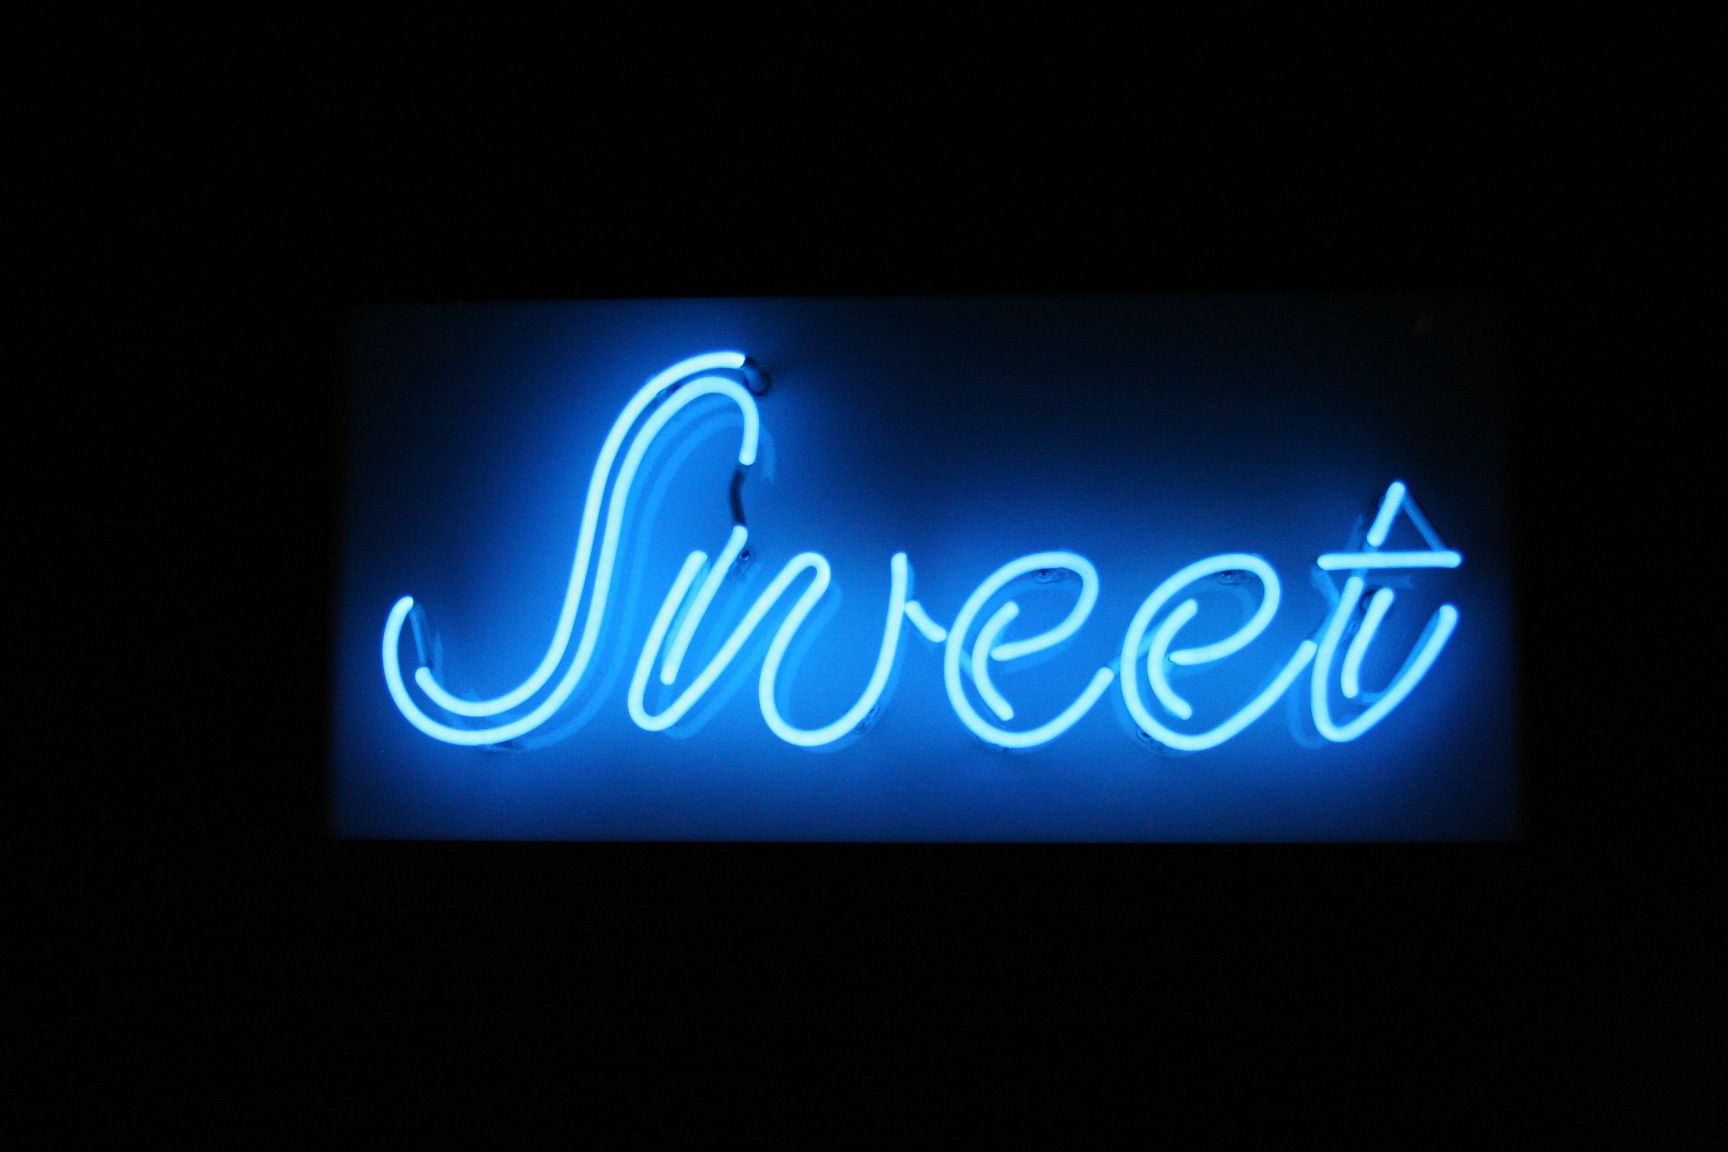 'Sweet' Neon at the 2012 OC Fair imagens